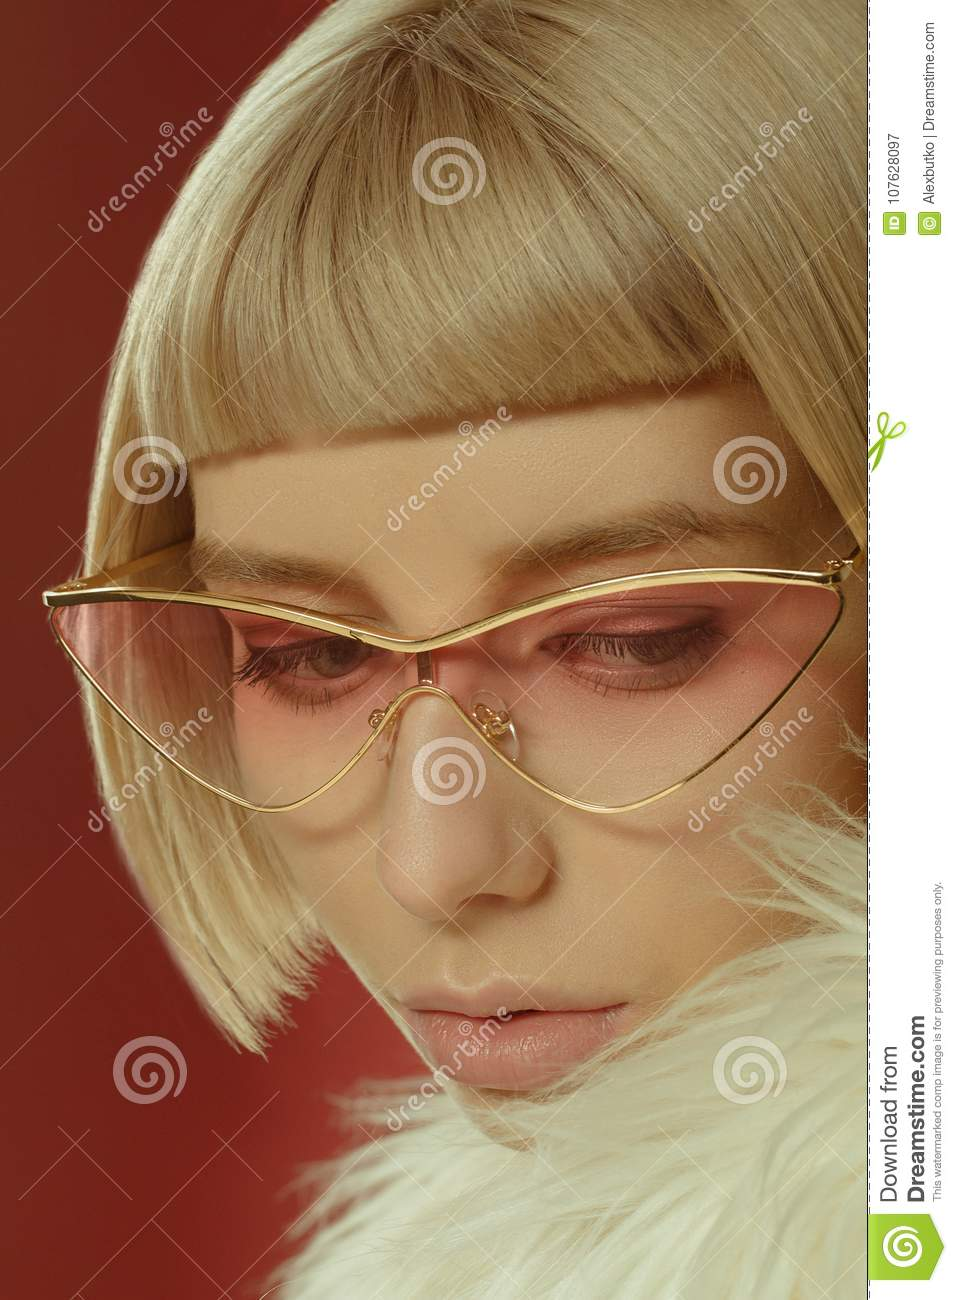 fa4a79fd6b72 Beautiful portrait of a stylish girl in fashionable glasses on a white  background